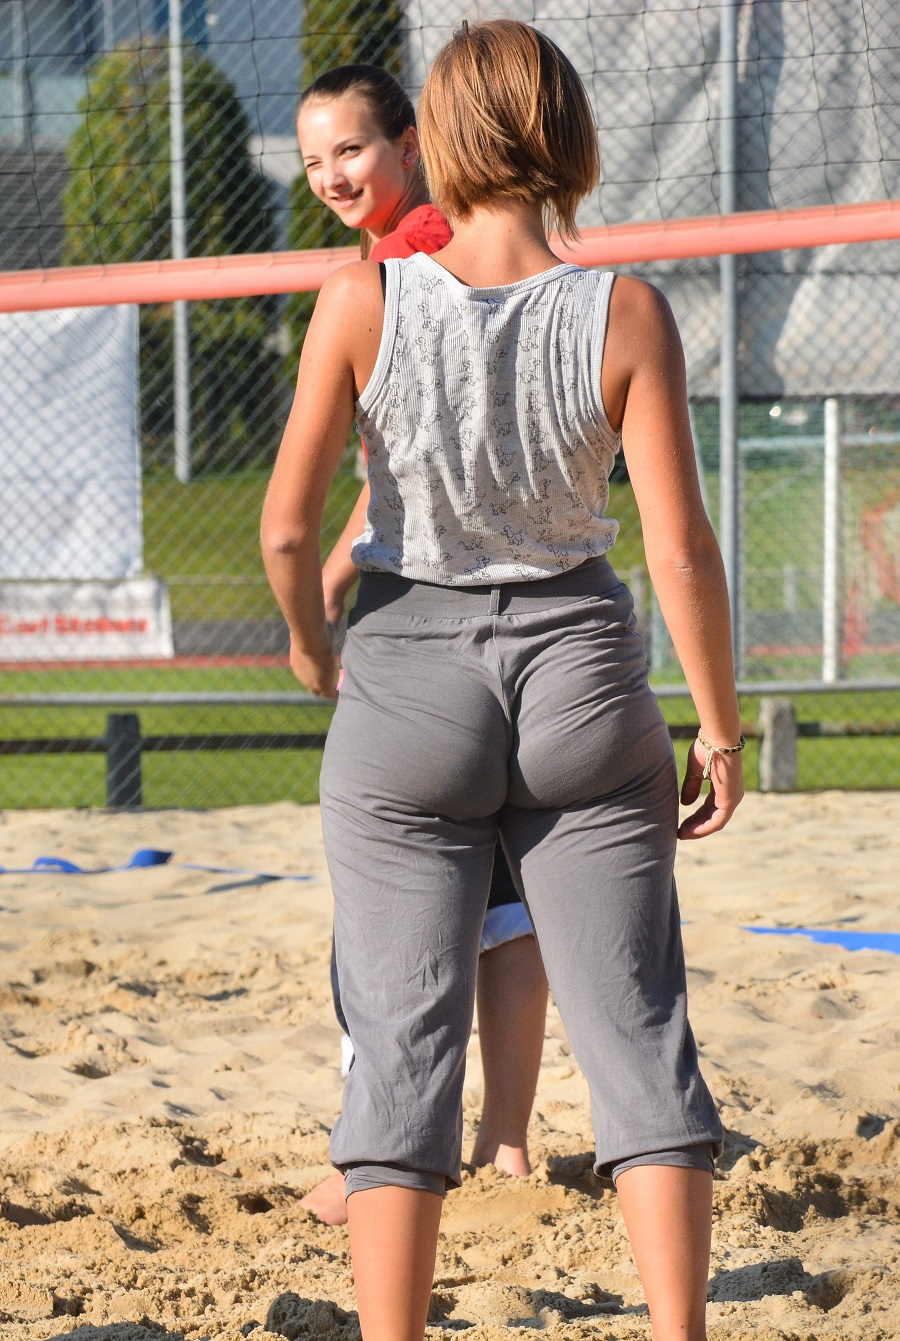 Bubble ass creepshot photo sexy candid girls with juicy